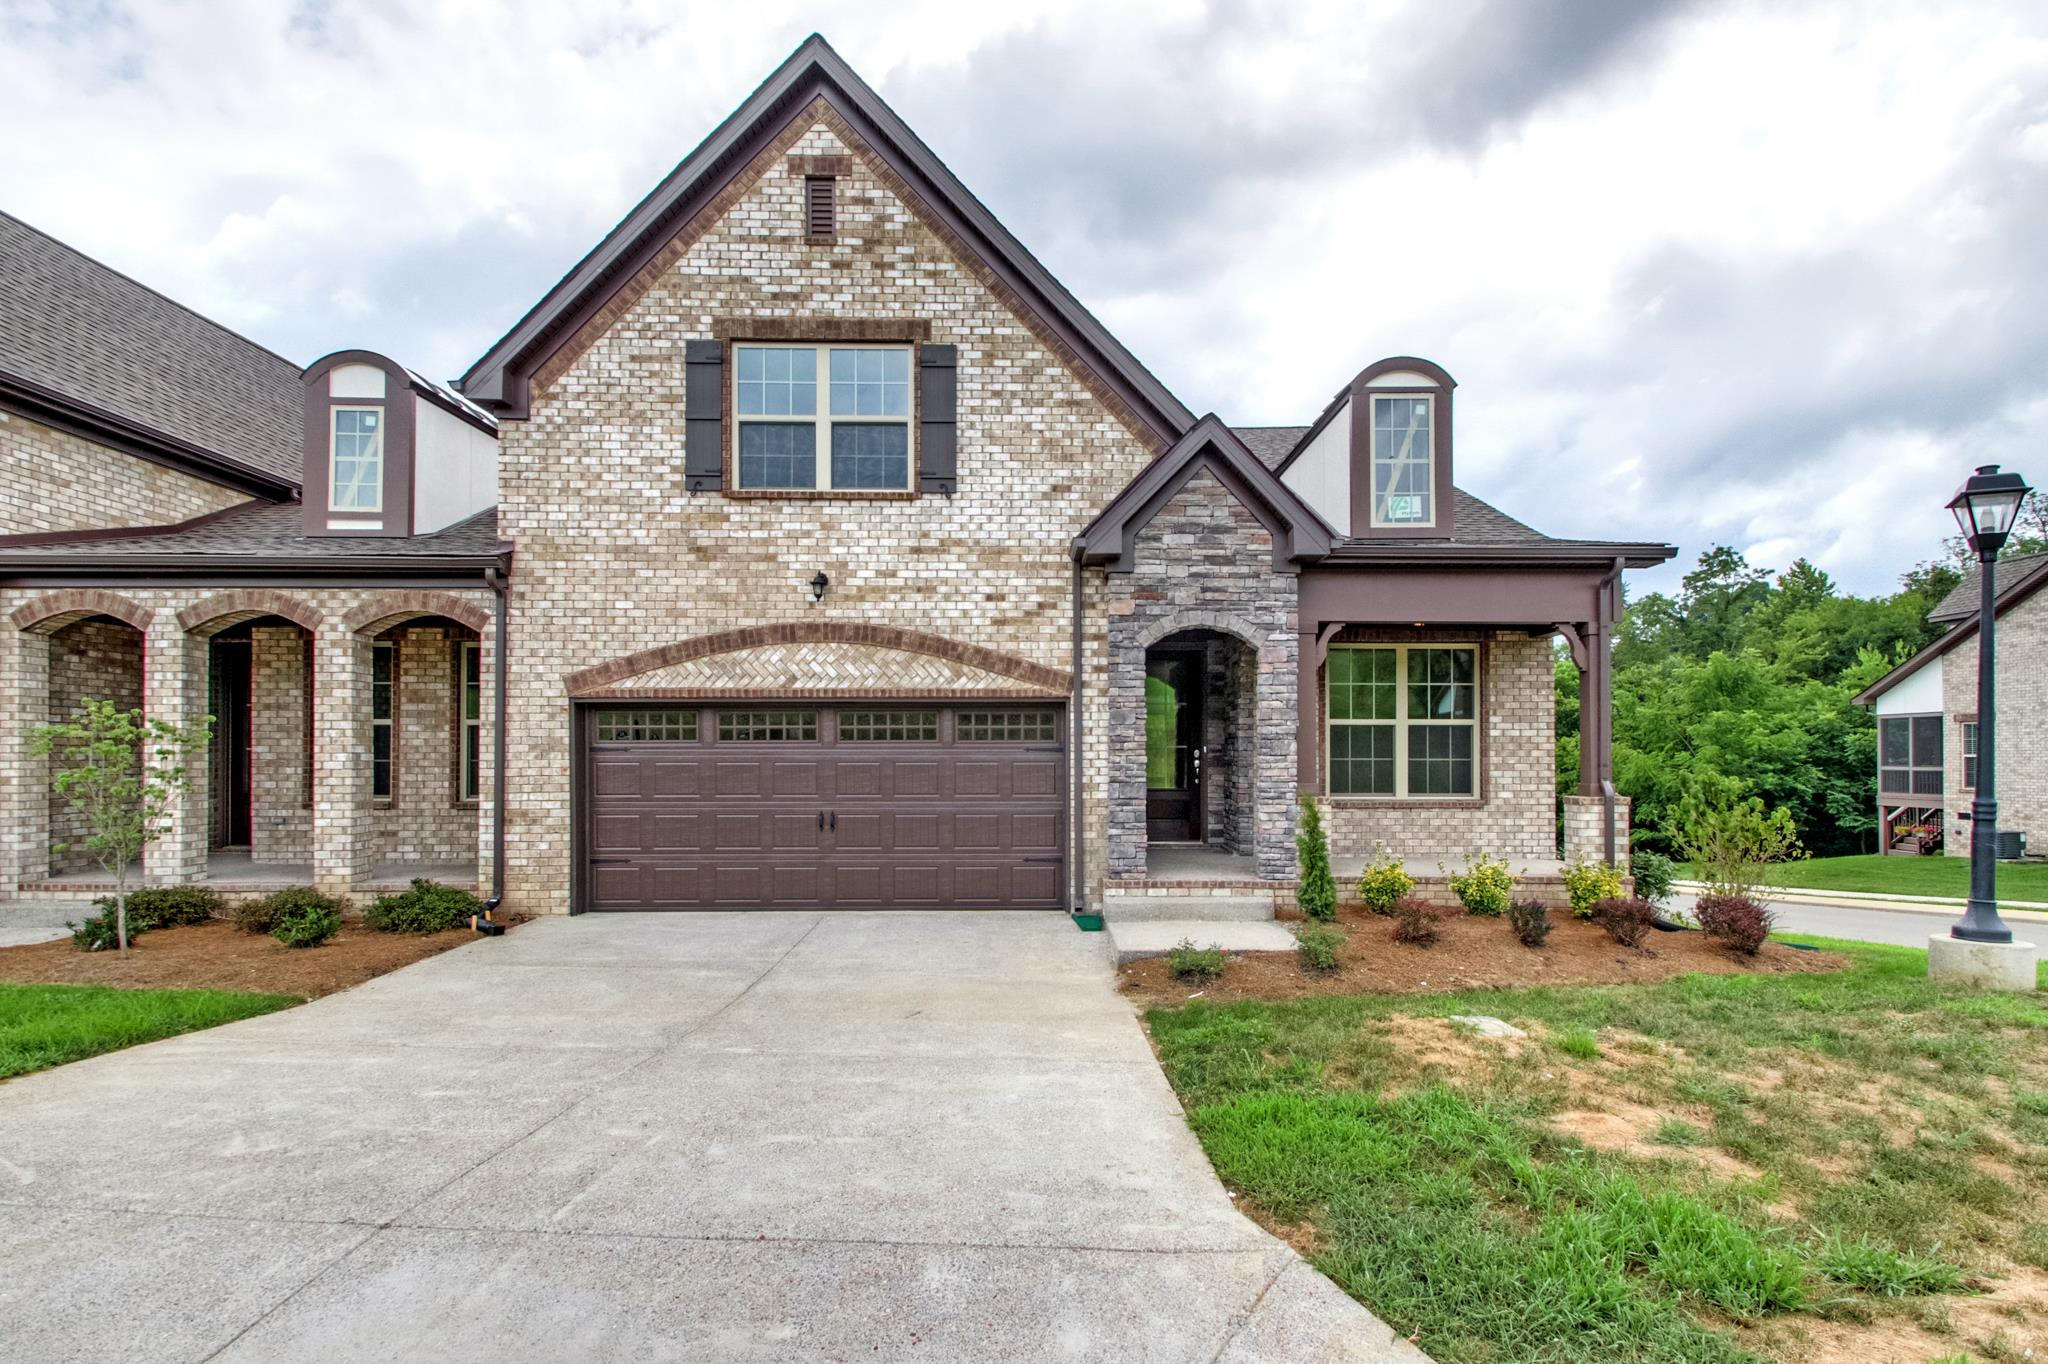 160 Village Circle, Lebanon in Wilson County County, TN 37087 Home for Sale